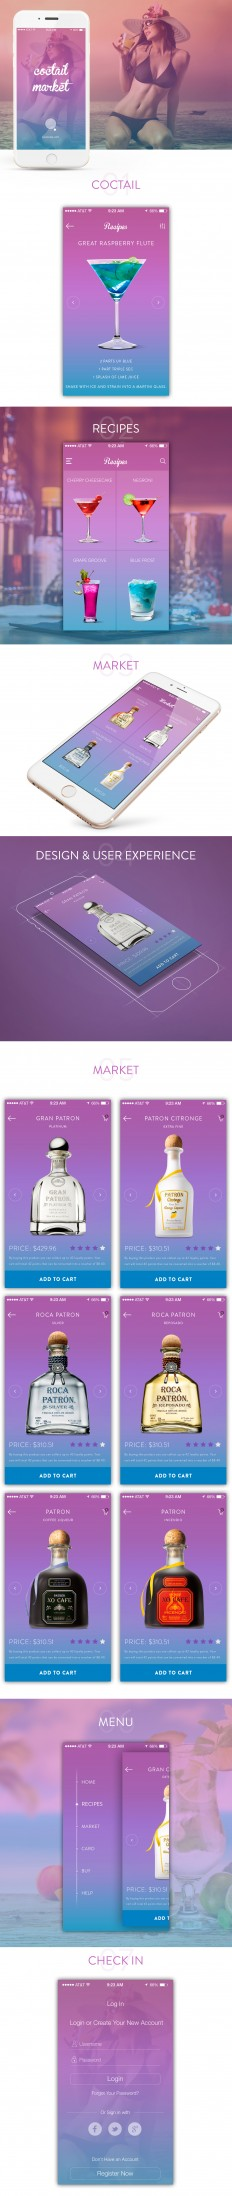 coctail market | Mobile Application UX/UI Design on